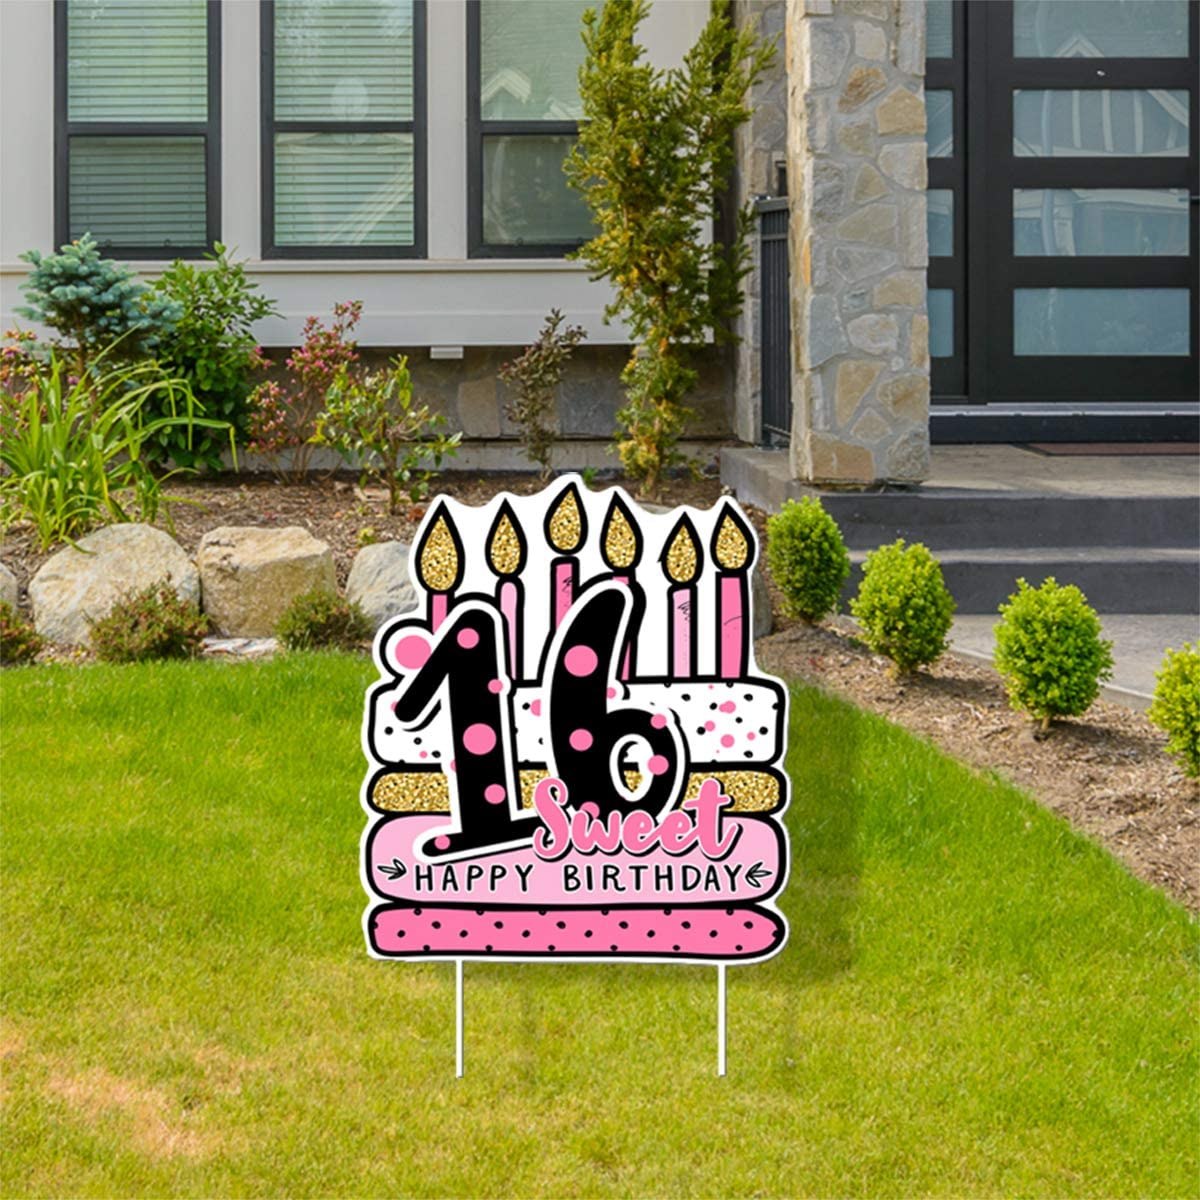 Haimimall Birthday Yard Signs with Stakes 16th Sweet Birthday Cake Yard Signs Outdoor 16th Lawn Decorations Home Party Decorations for Girls 16th Birthday Party Supplies.